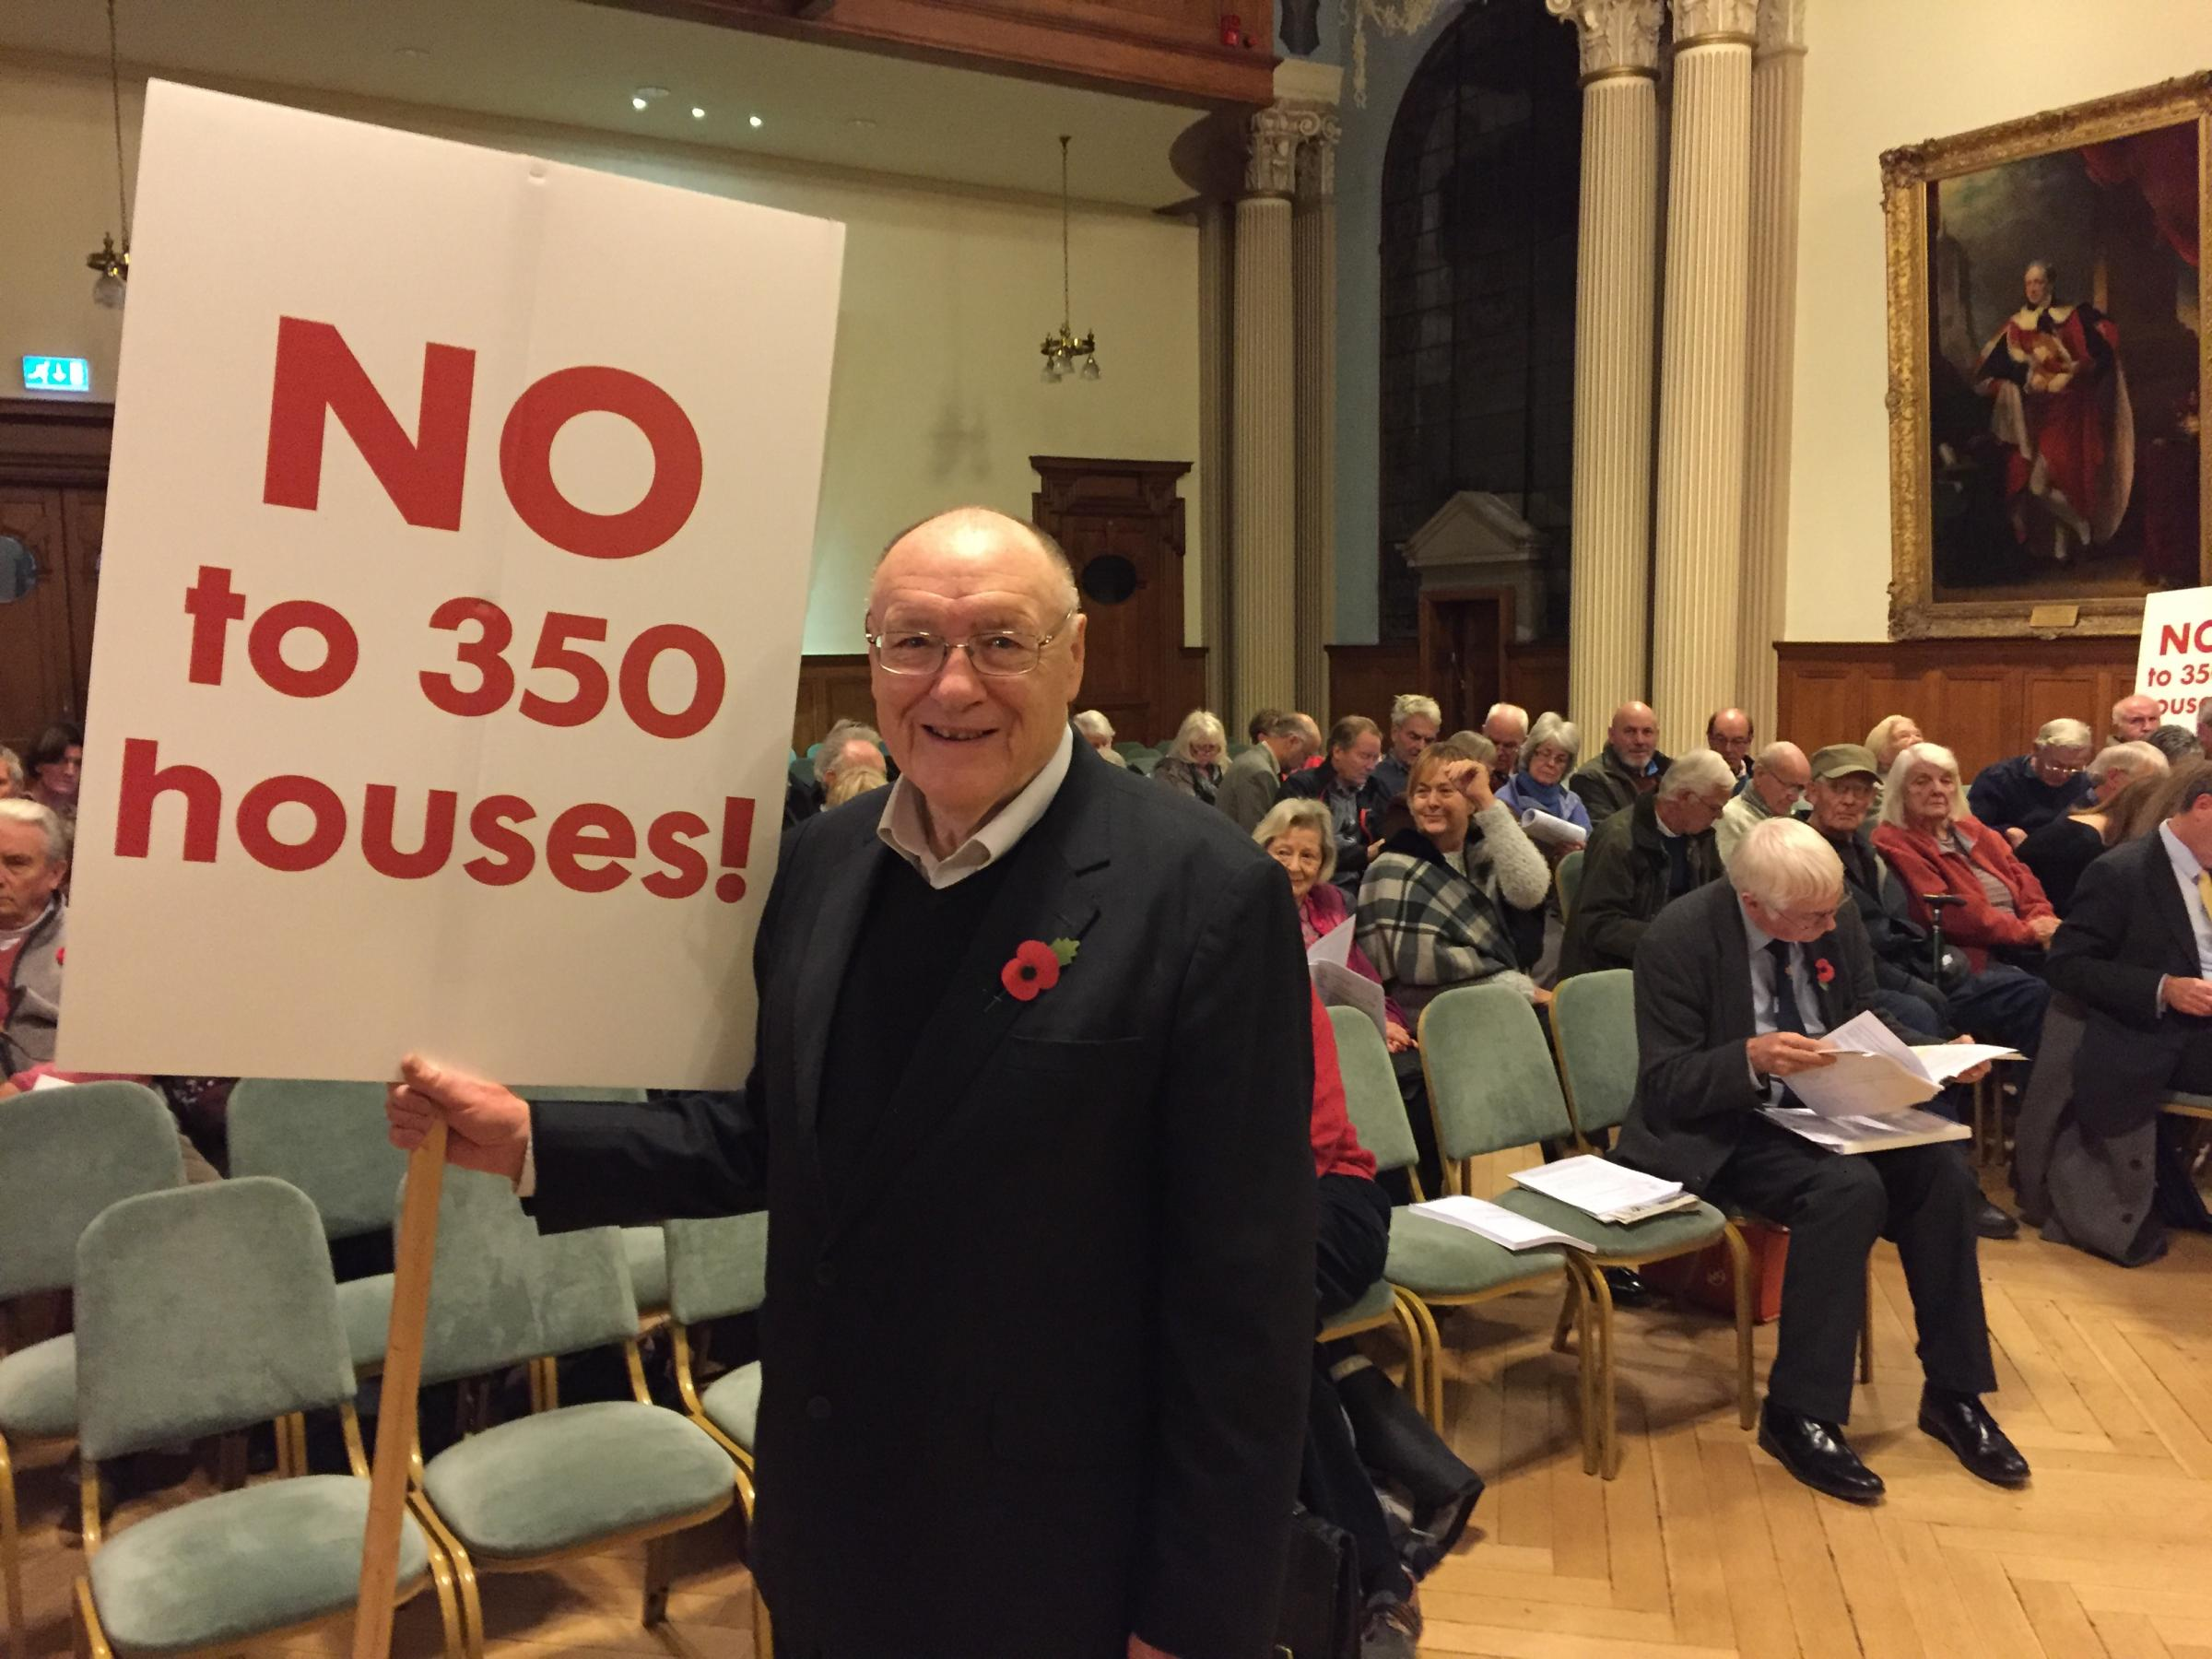 Campaigners descend on town hall to tell council: 'Your local plans is not fit for purpose'